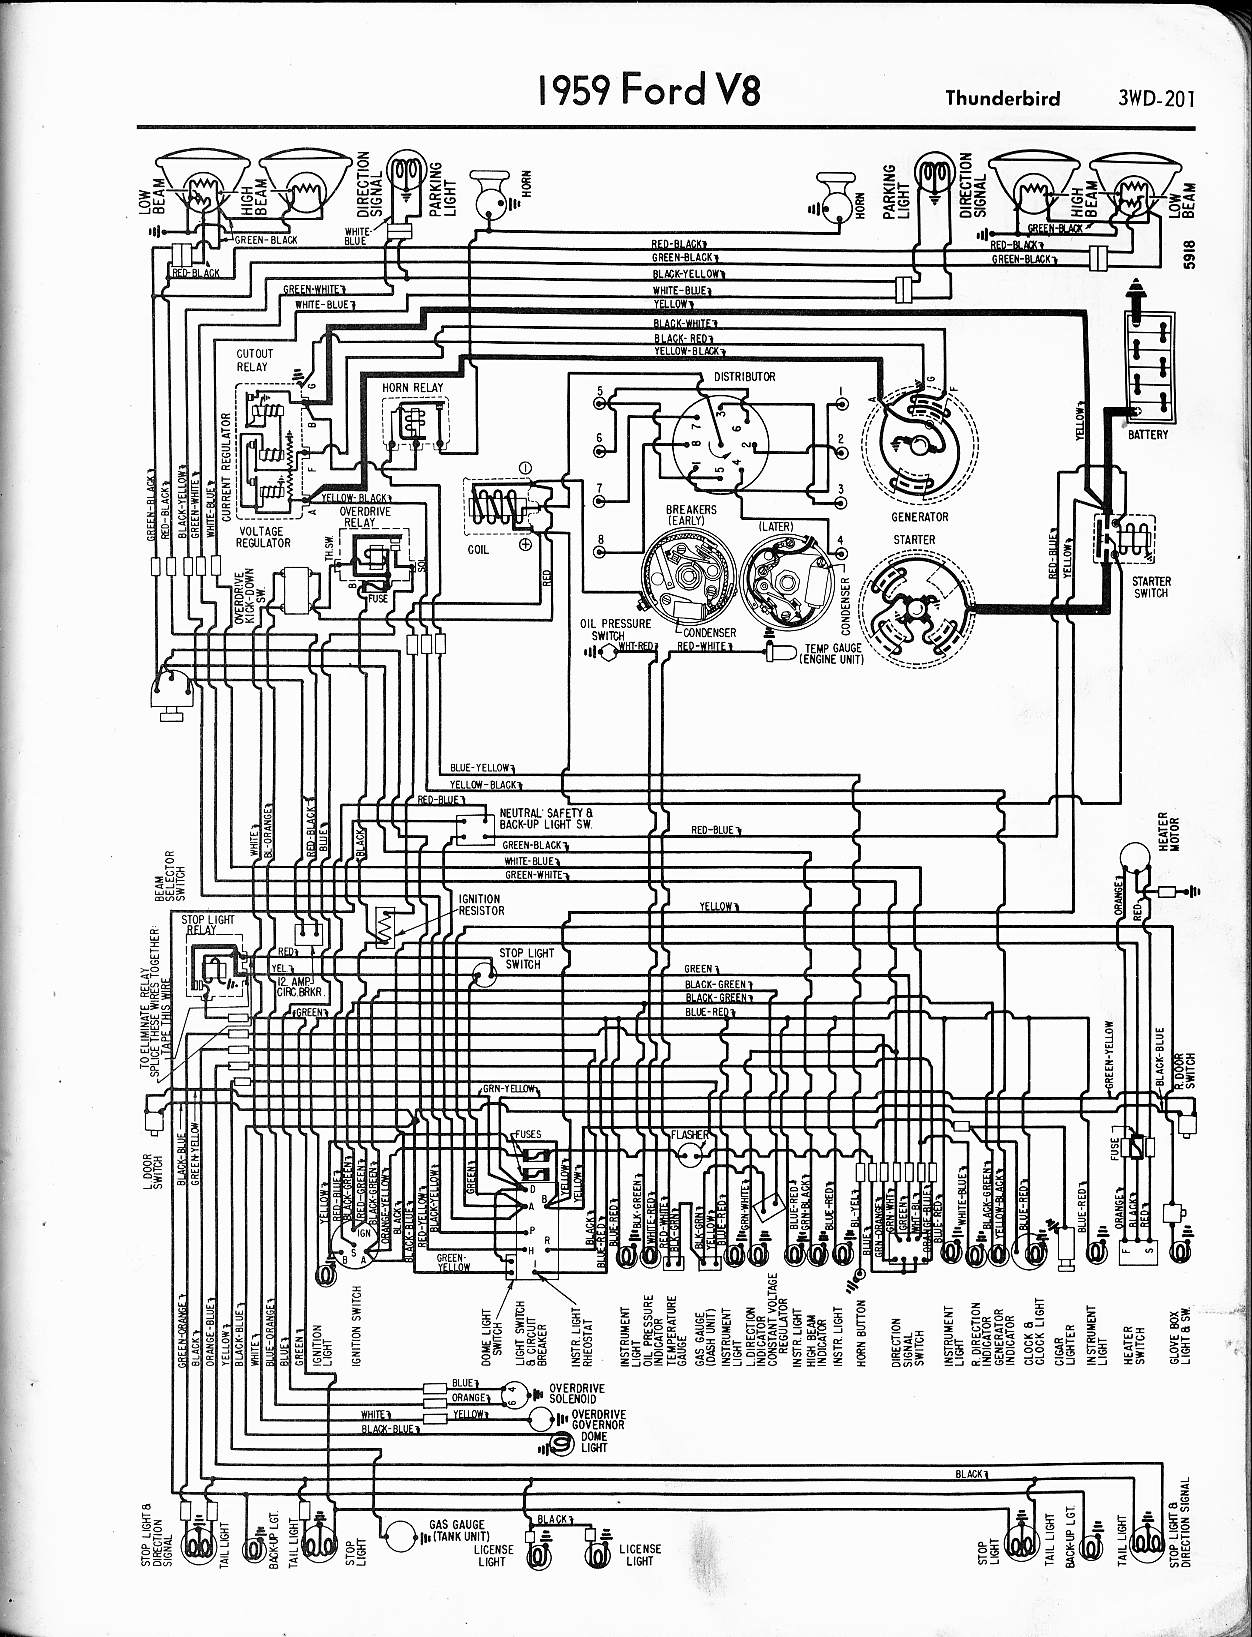 1990 Alfa Romeo Fuse Box Wiring Library Engine Diagrams 1956 Ford Color Codes Data Schema C6 Diagram Corvette